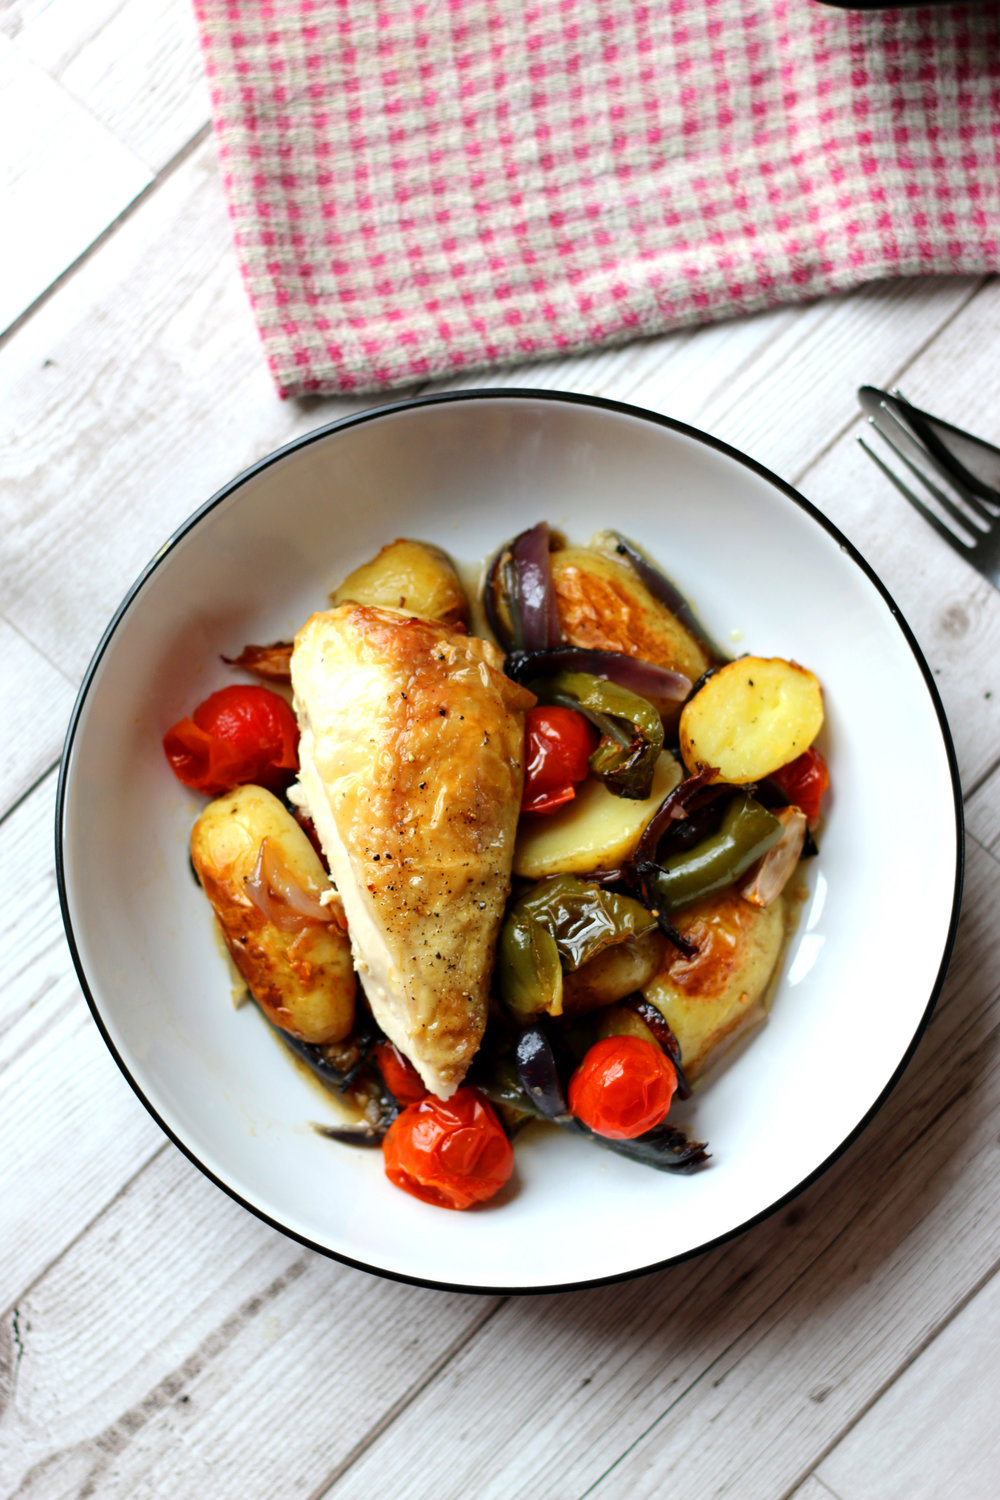 Butterflied chicken tray bake with roasted vegetables by Limahl Asmall